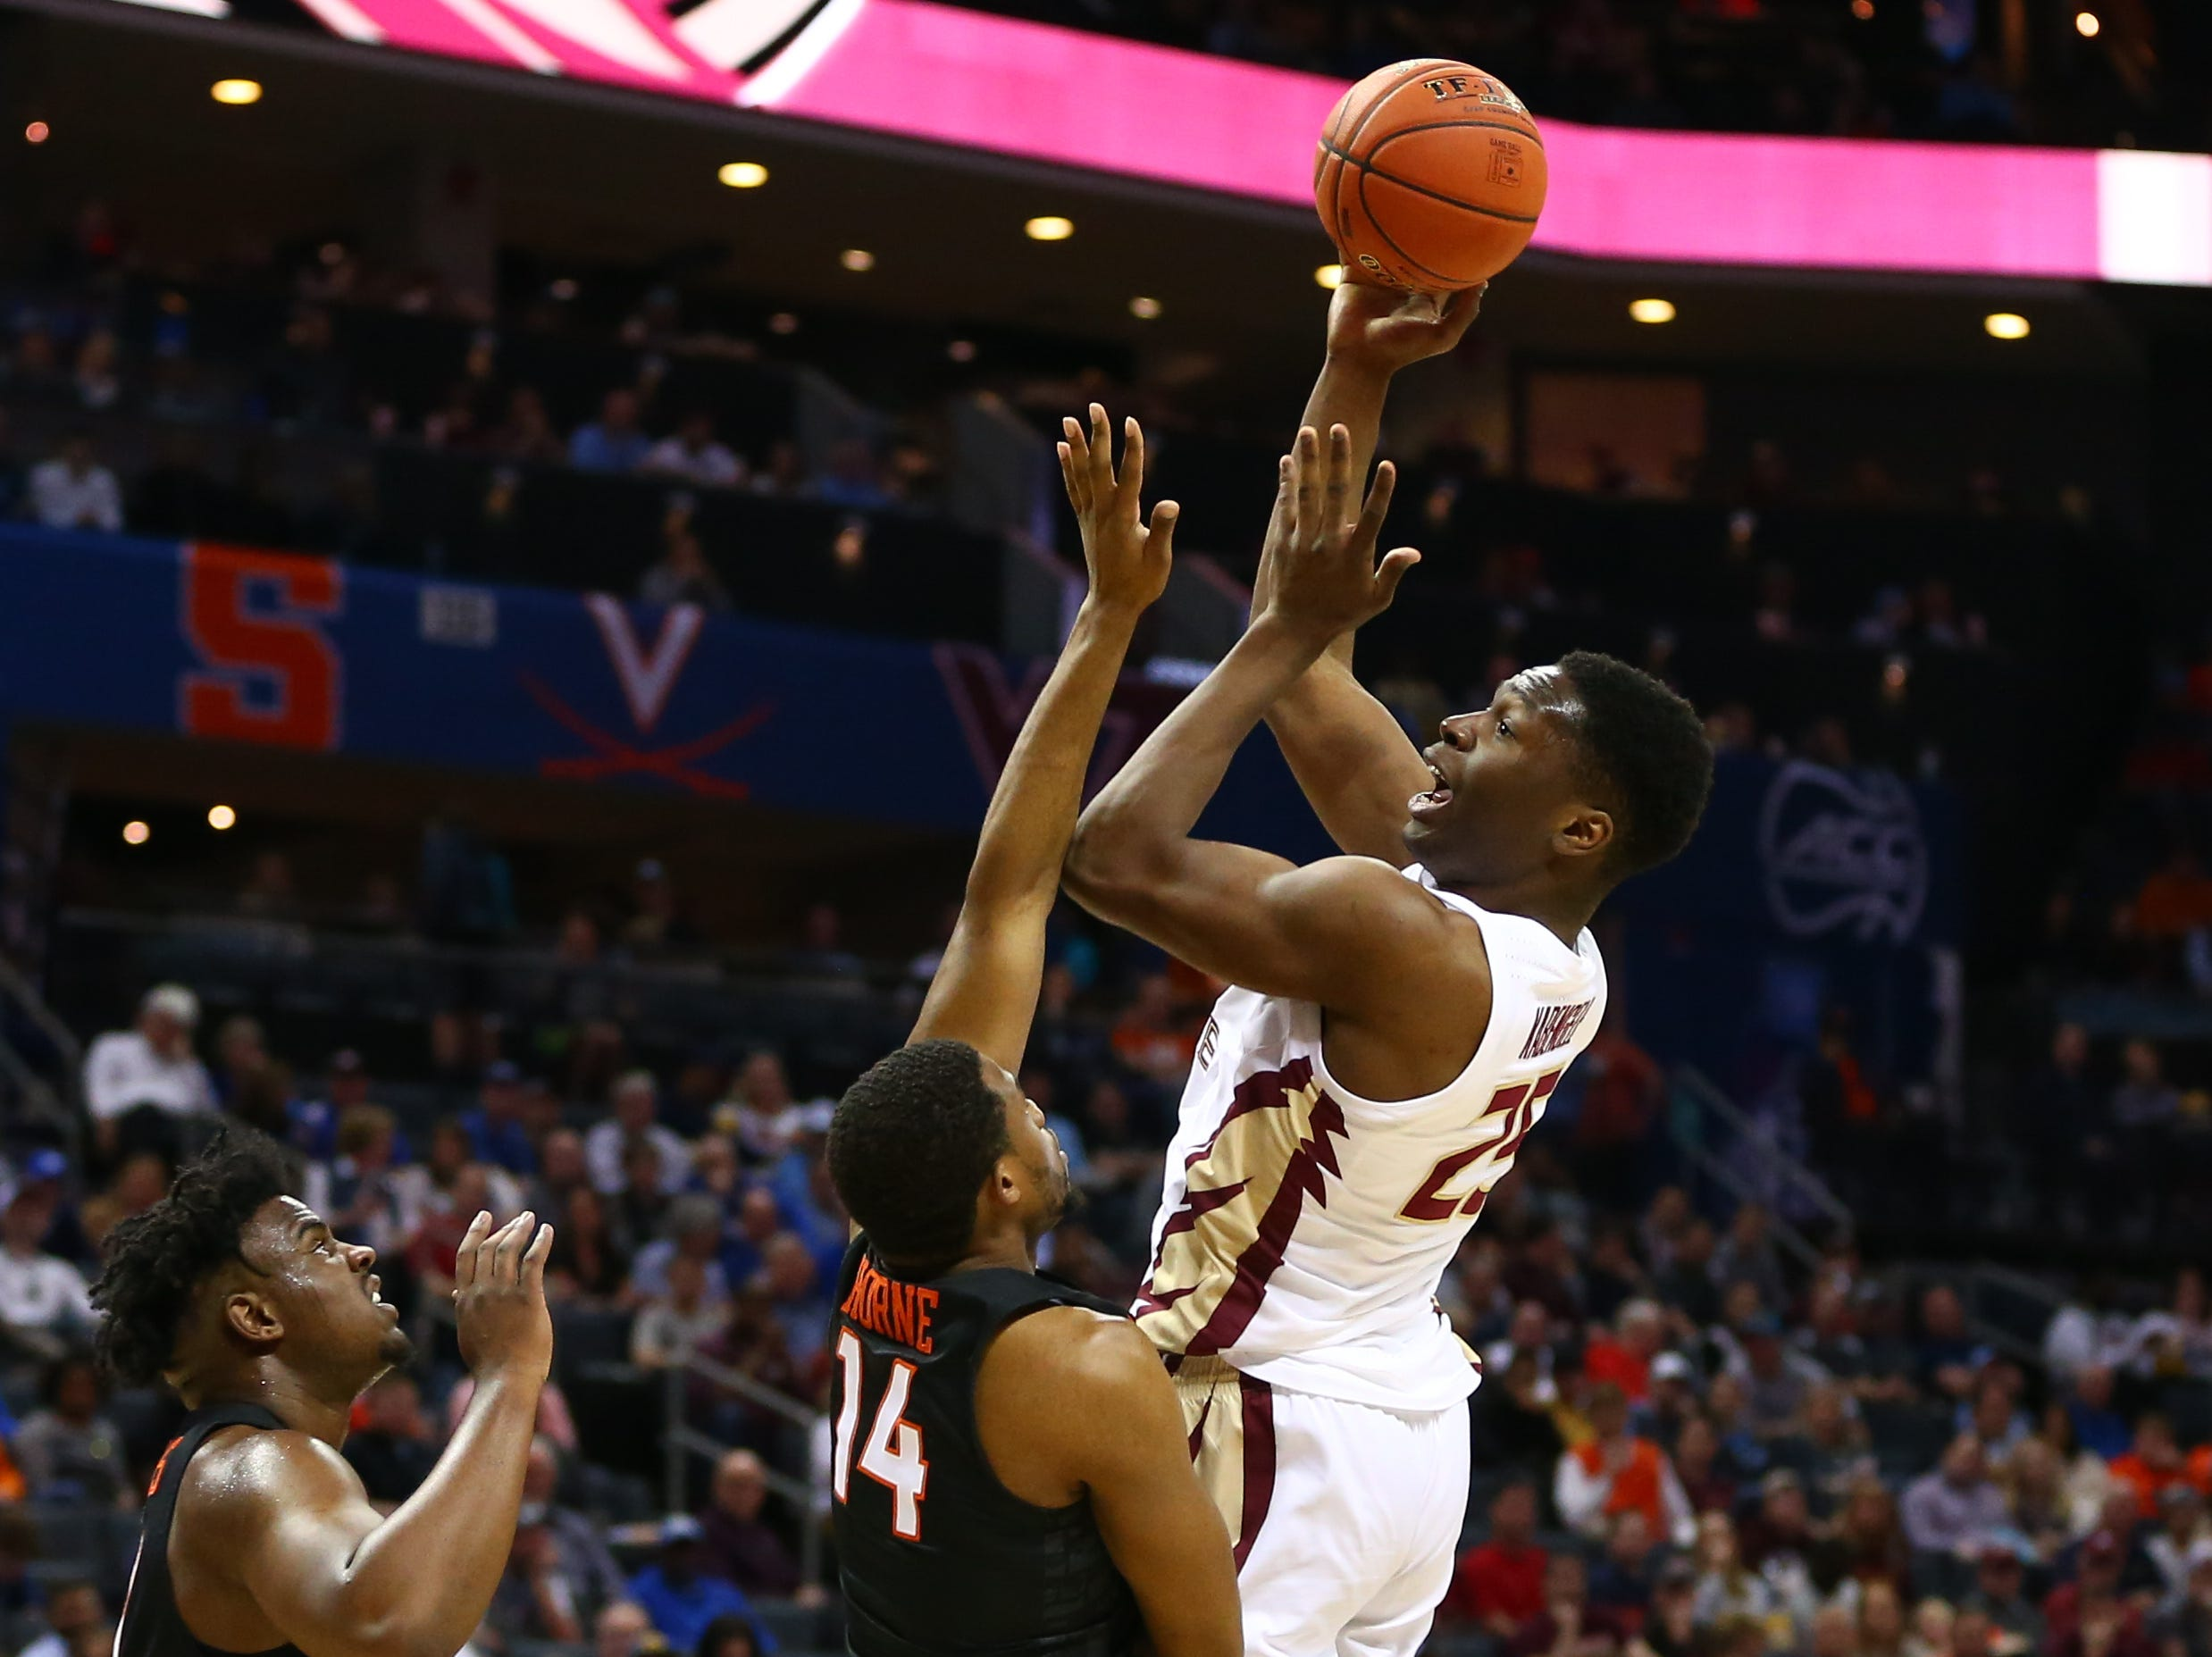 Mar 14, 2019; Charlotte, NC, USA; Florida State Seminoles forward Mfiondu Kabengele (25) shoots the ball against Virginia Tech Hokies forward P.J. Horne (14) in the first half in the ACC conference tournament at Spectrum Center. Mandatory Credit: Jeremy Brevard-USA TODAY Sports